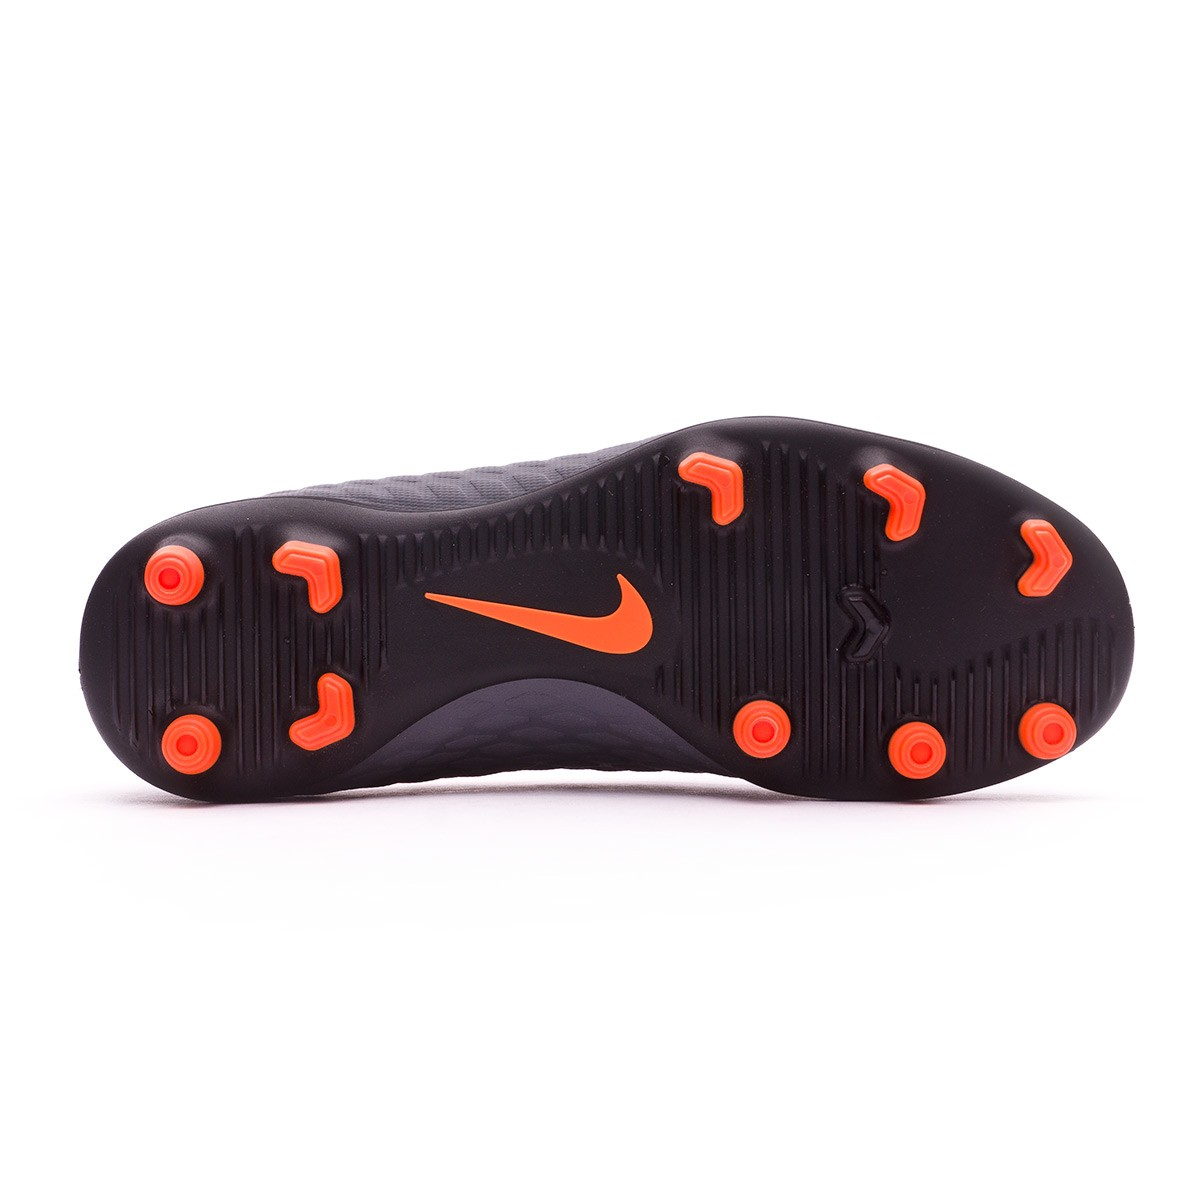 f36803a2234 Football Boots Nike Kids Hypervenom Phantom III Club FG Dark grey-Total  orange-White - Football store Fútbol Emotion